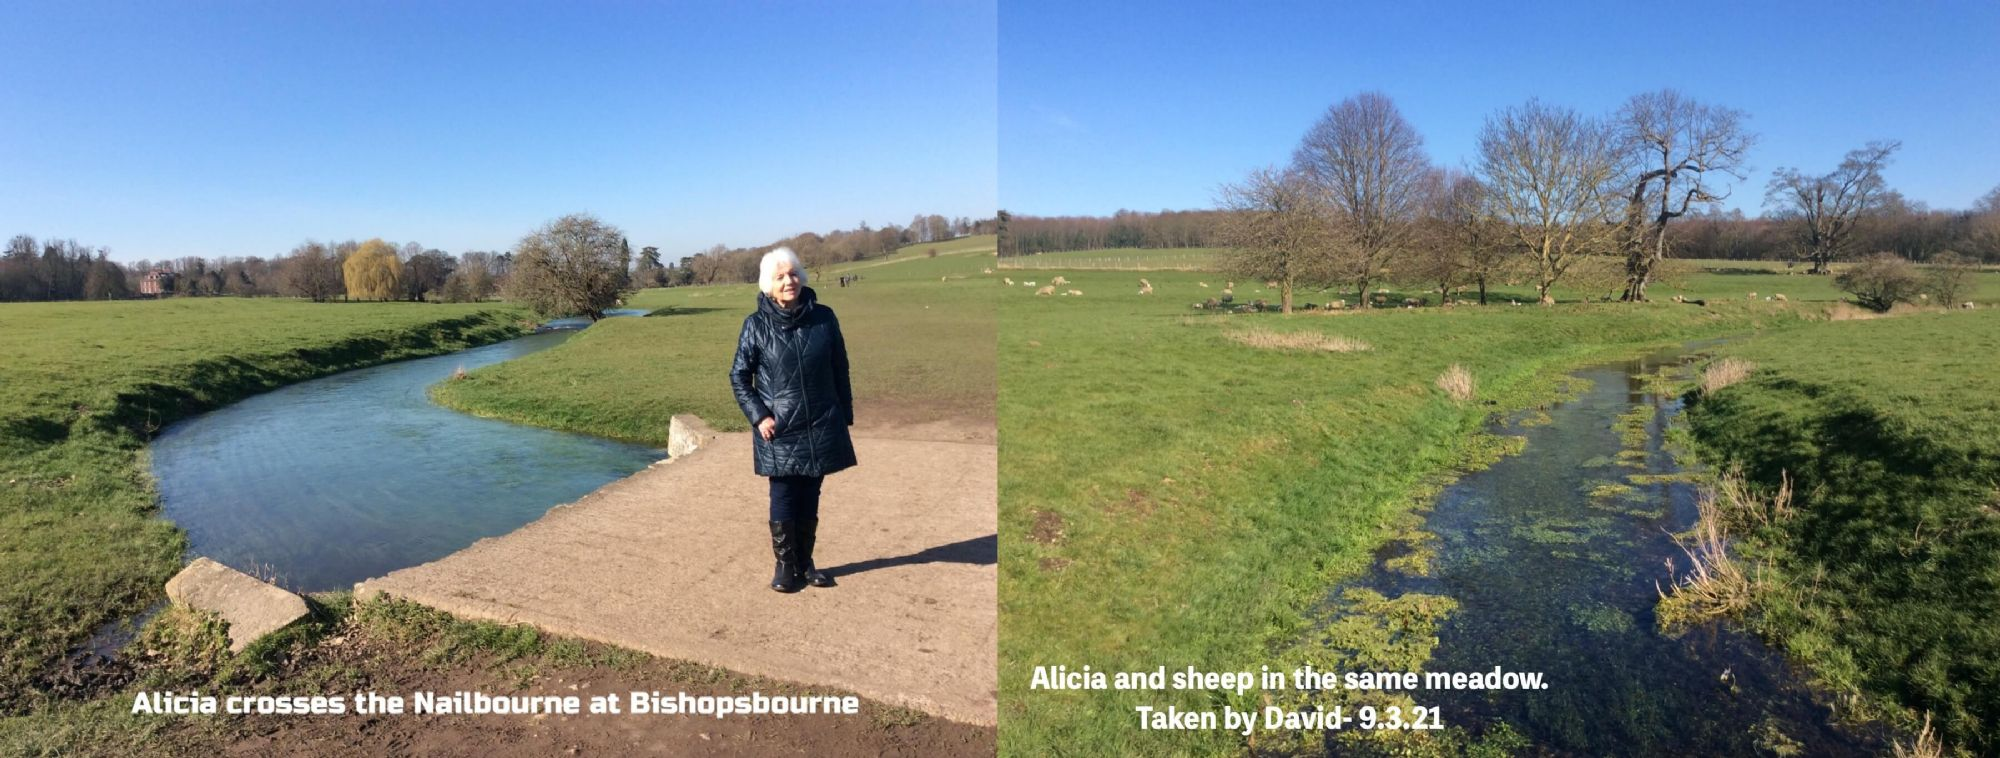 Alicia and sheep in the same meadow.